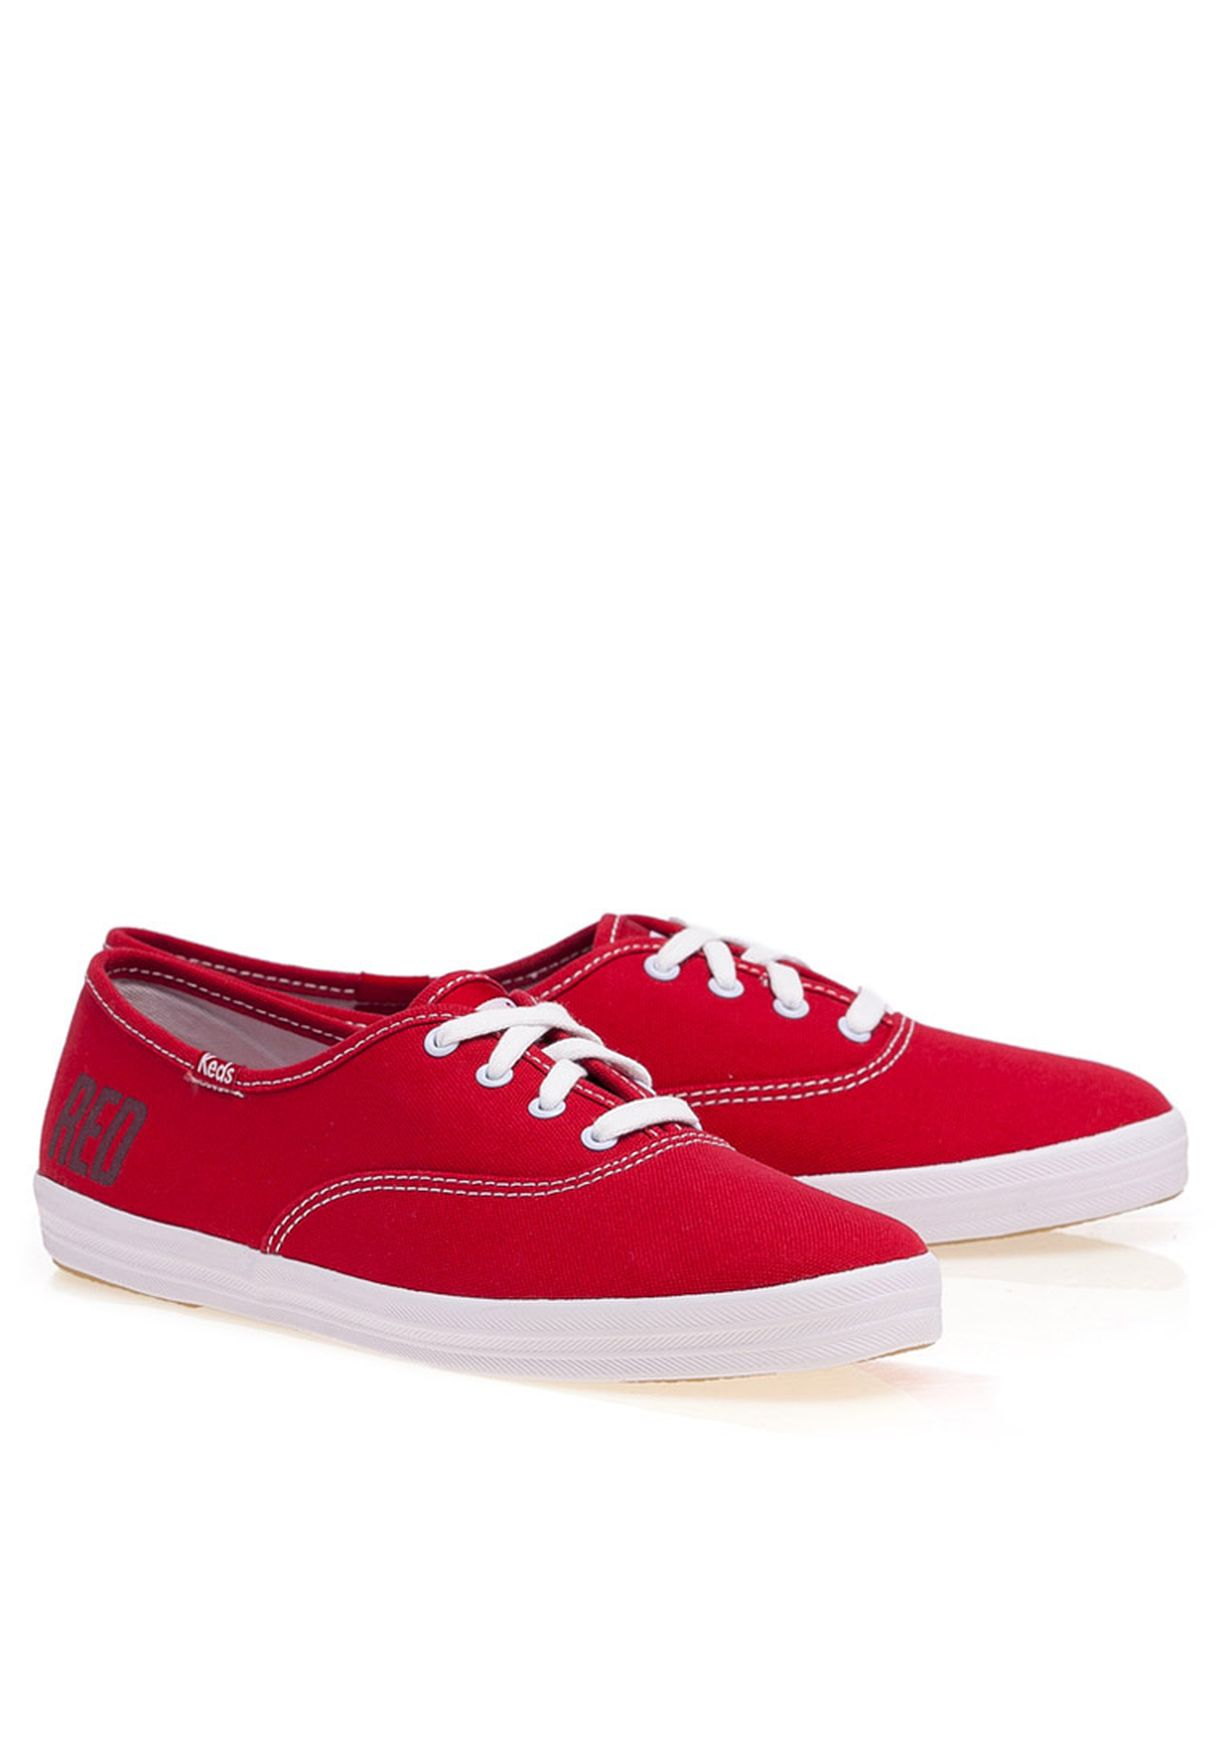 540a5b431 Shop Keds red TS Champion Red Sneaker for Women in Qatar - KE731SH07ZJG